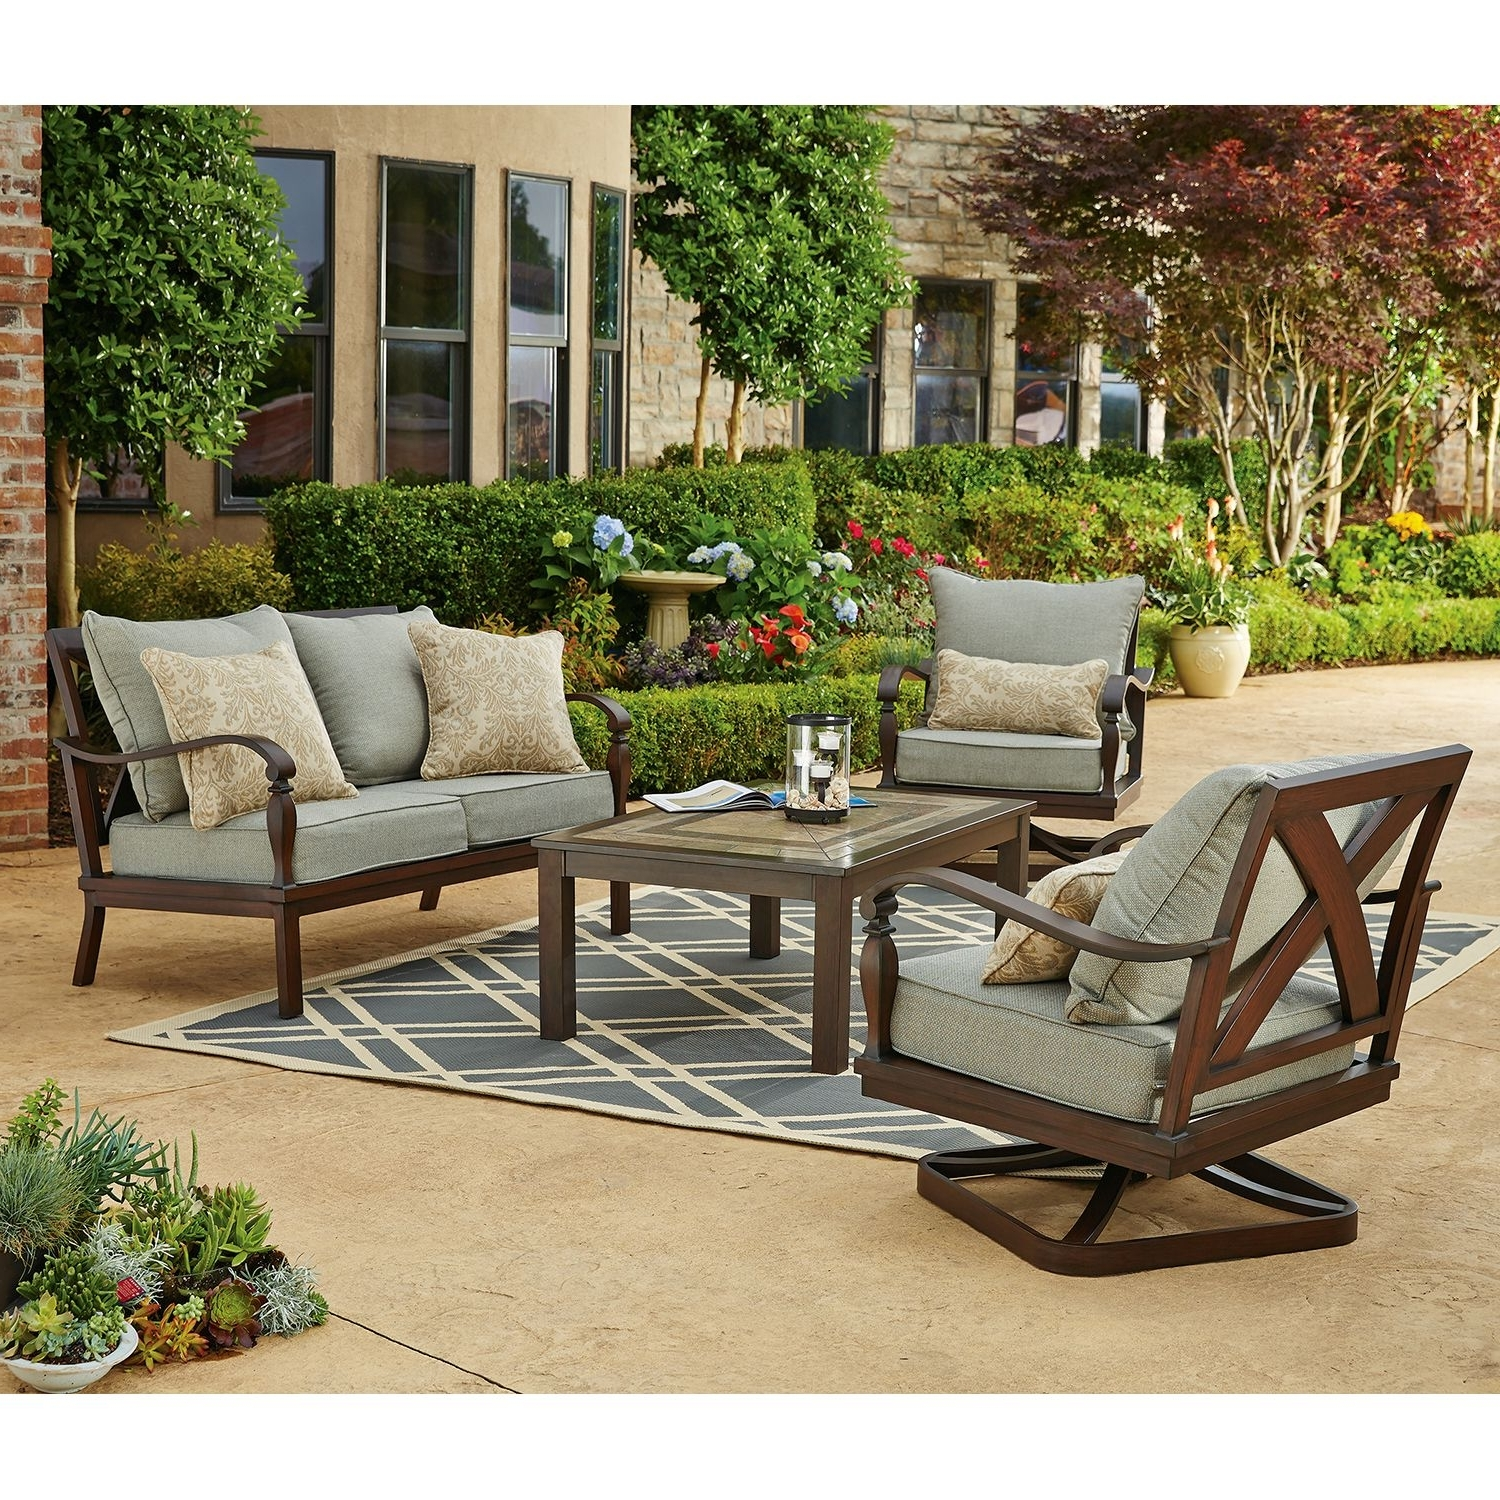 Newest Furniture: Cozy Wrought Iron Patio Chairs With Cushions And Gray With Iron Patio Conversation Sets (View 11 of 20)